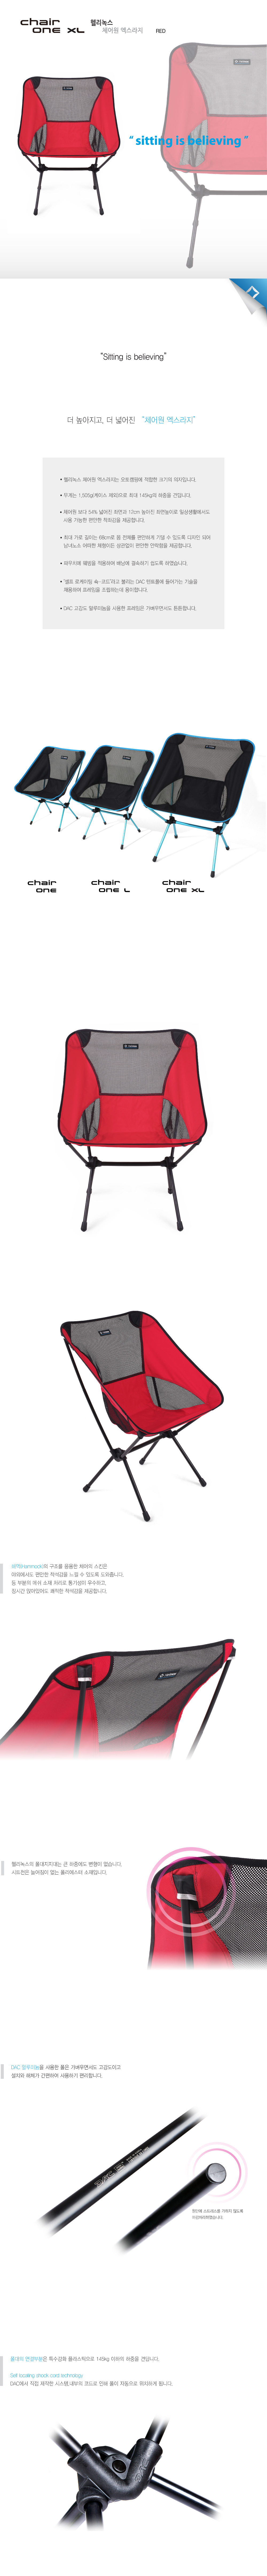 20170613-Helinox_chair-one_XL-red-상품페이지1.jpg